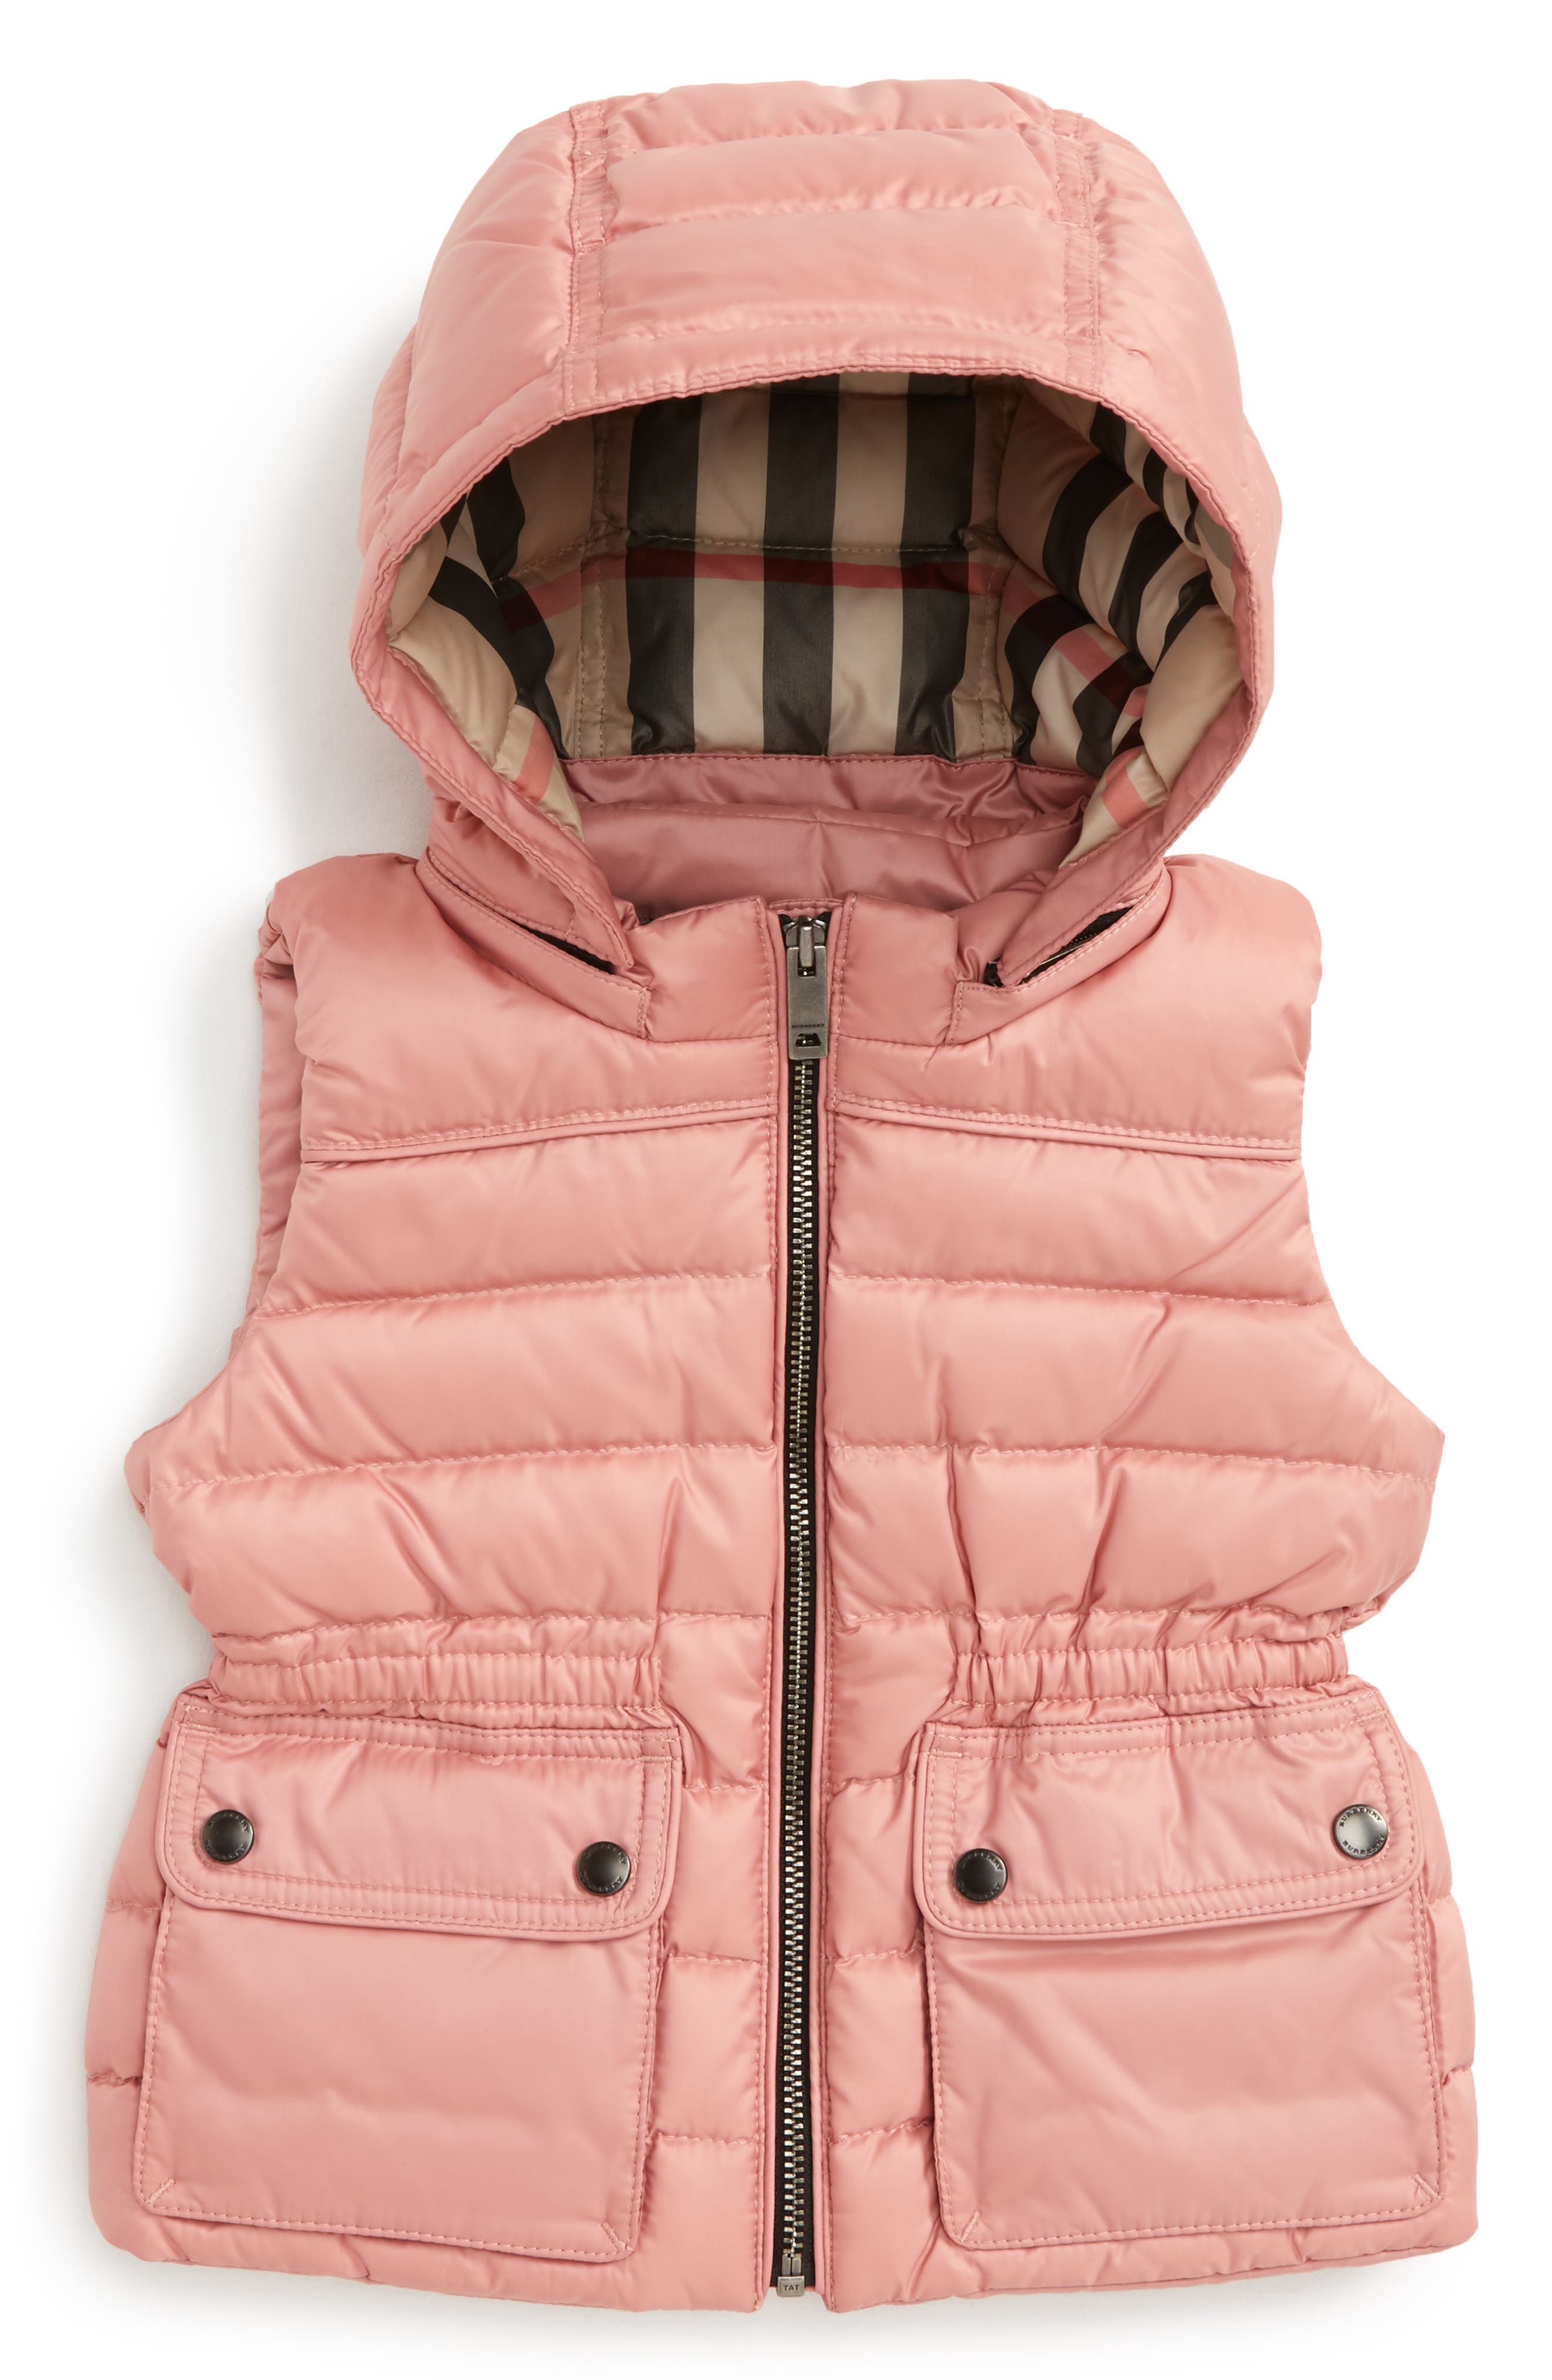 Maggie Hooded Vest,                             Main thumbnail 1, color,                             680